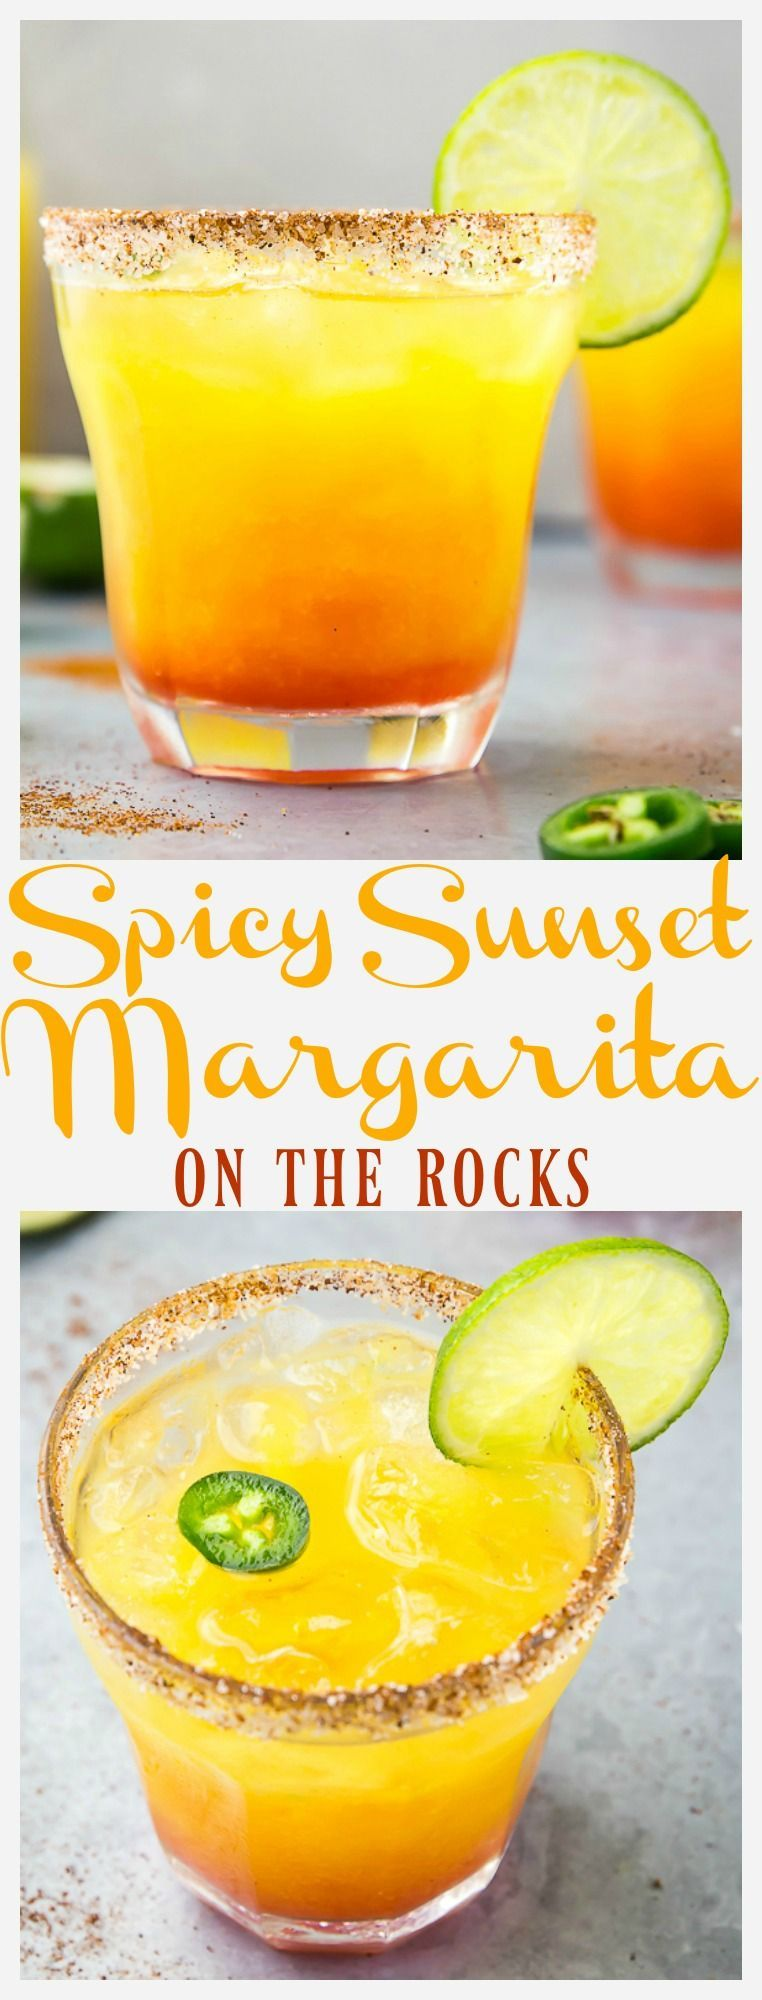 Sunset Margarita On The Rocks | This  is a fruity, fiery twist on the classic Mexican cocktail. Flavored with mango, pineapple, jalapeno and grenadine, this tropical tequila libation is sure to get the party started! @nospoonn